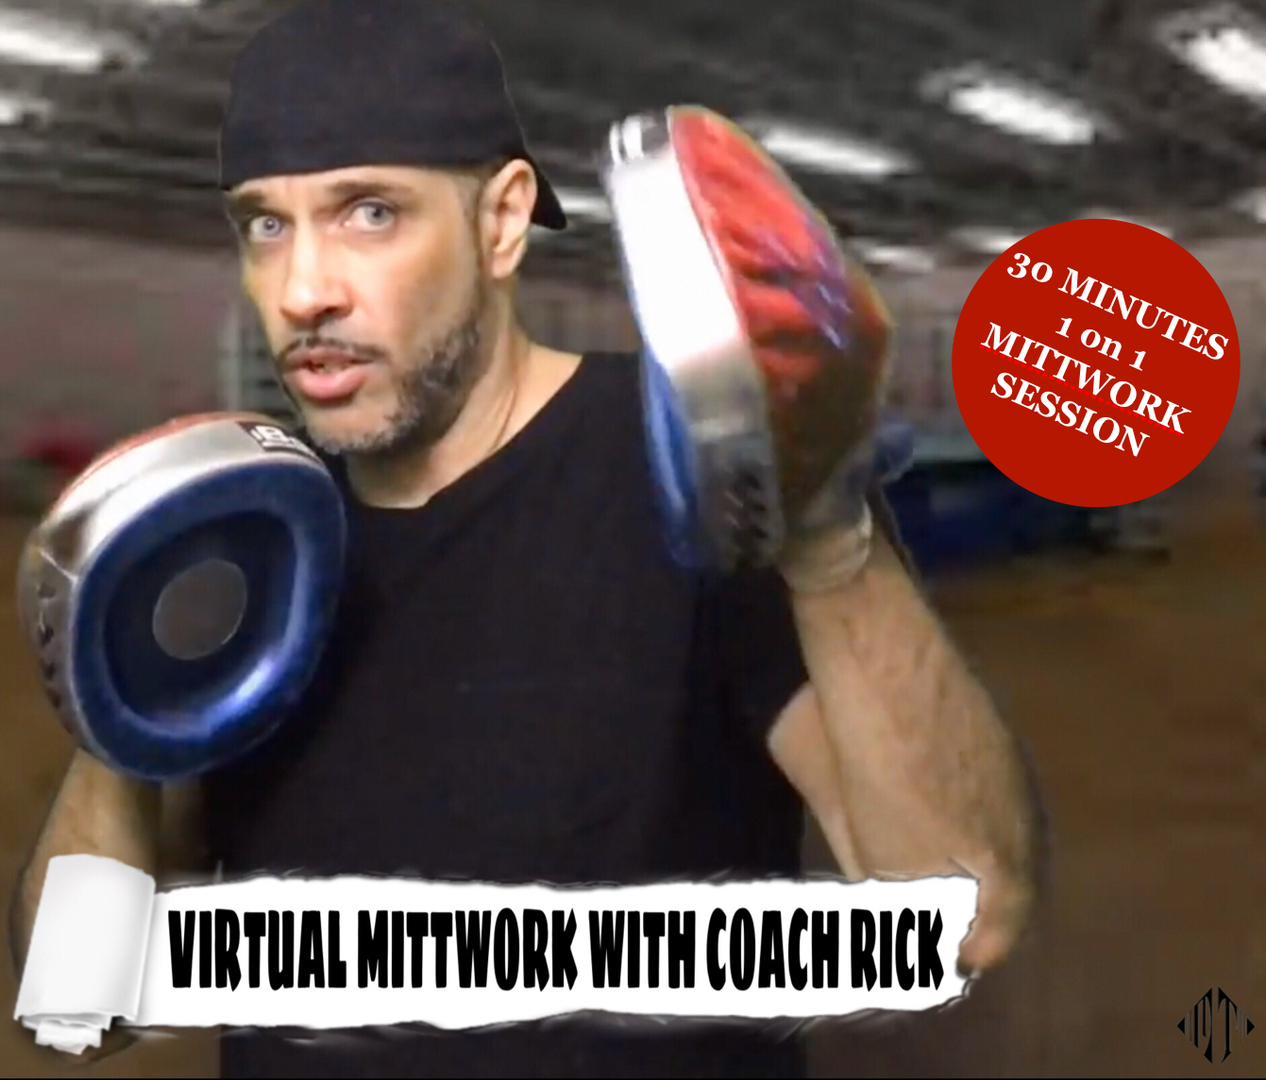 Boxing Mittwork Online Training Videos - Mittology